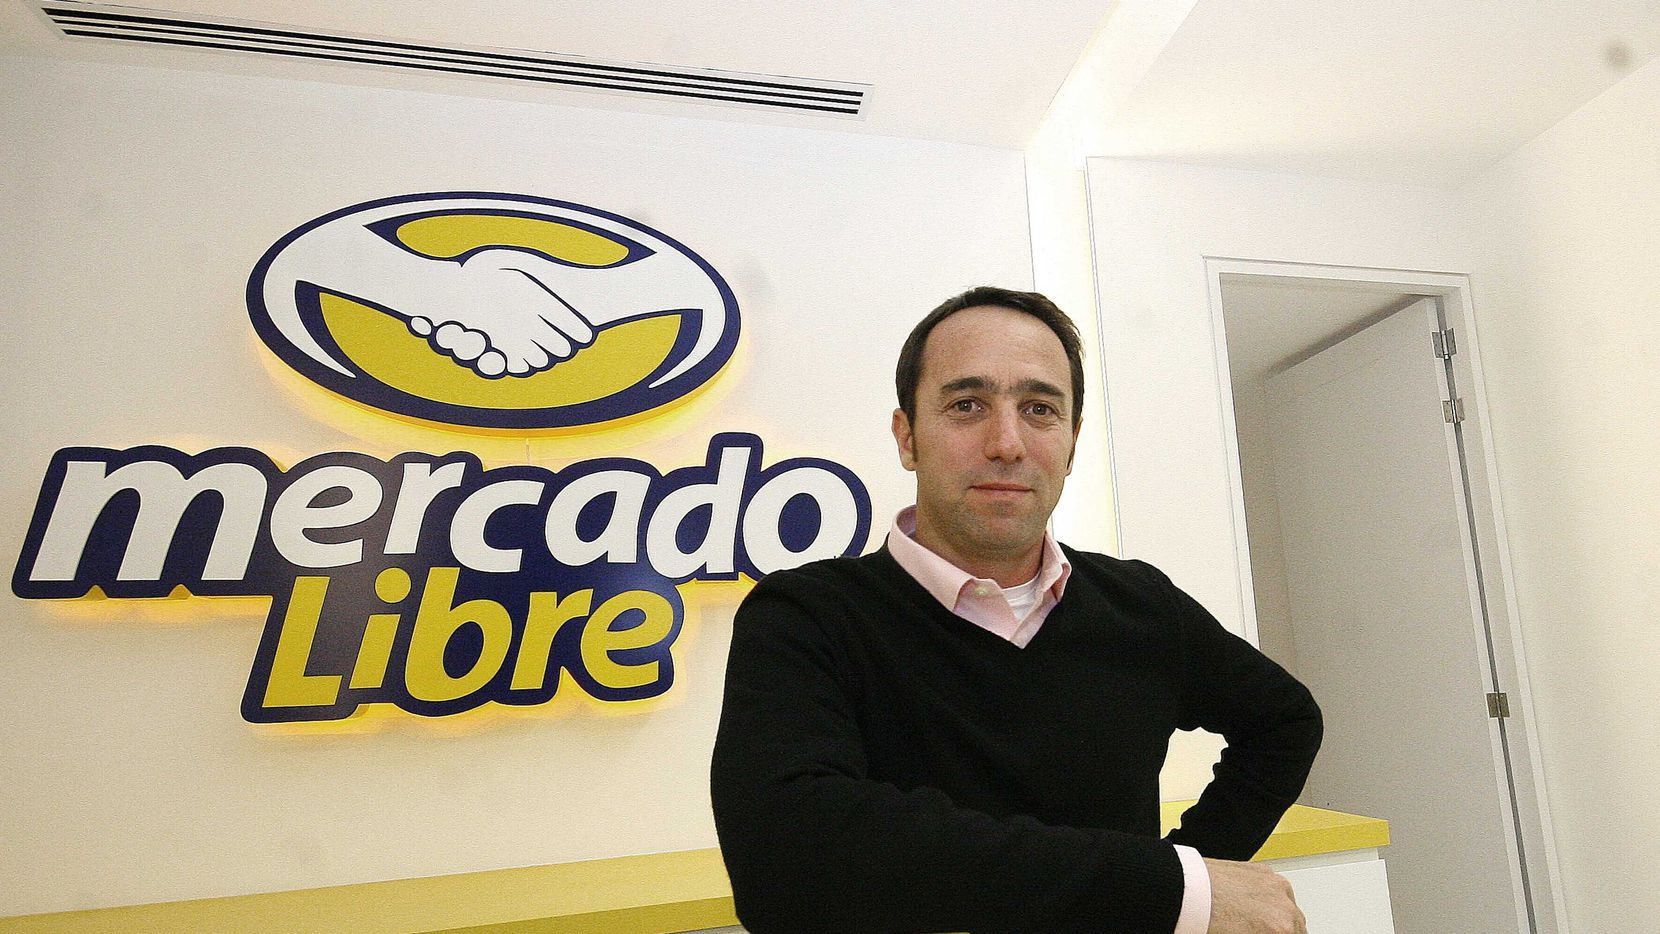 Marcos Galperin is one of the co-founders of MercadoLibre.